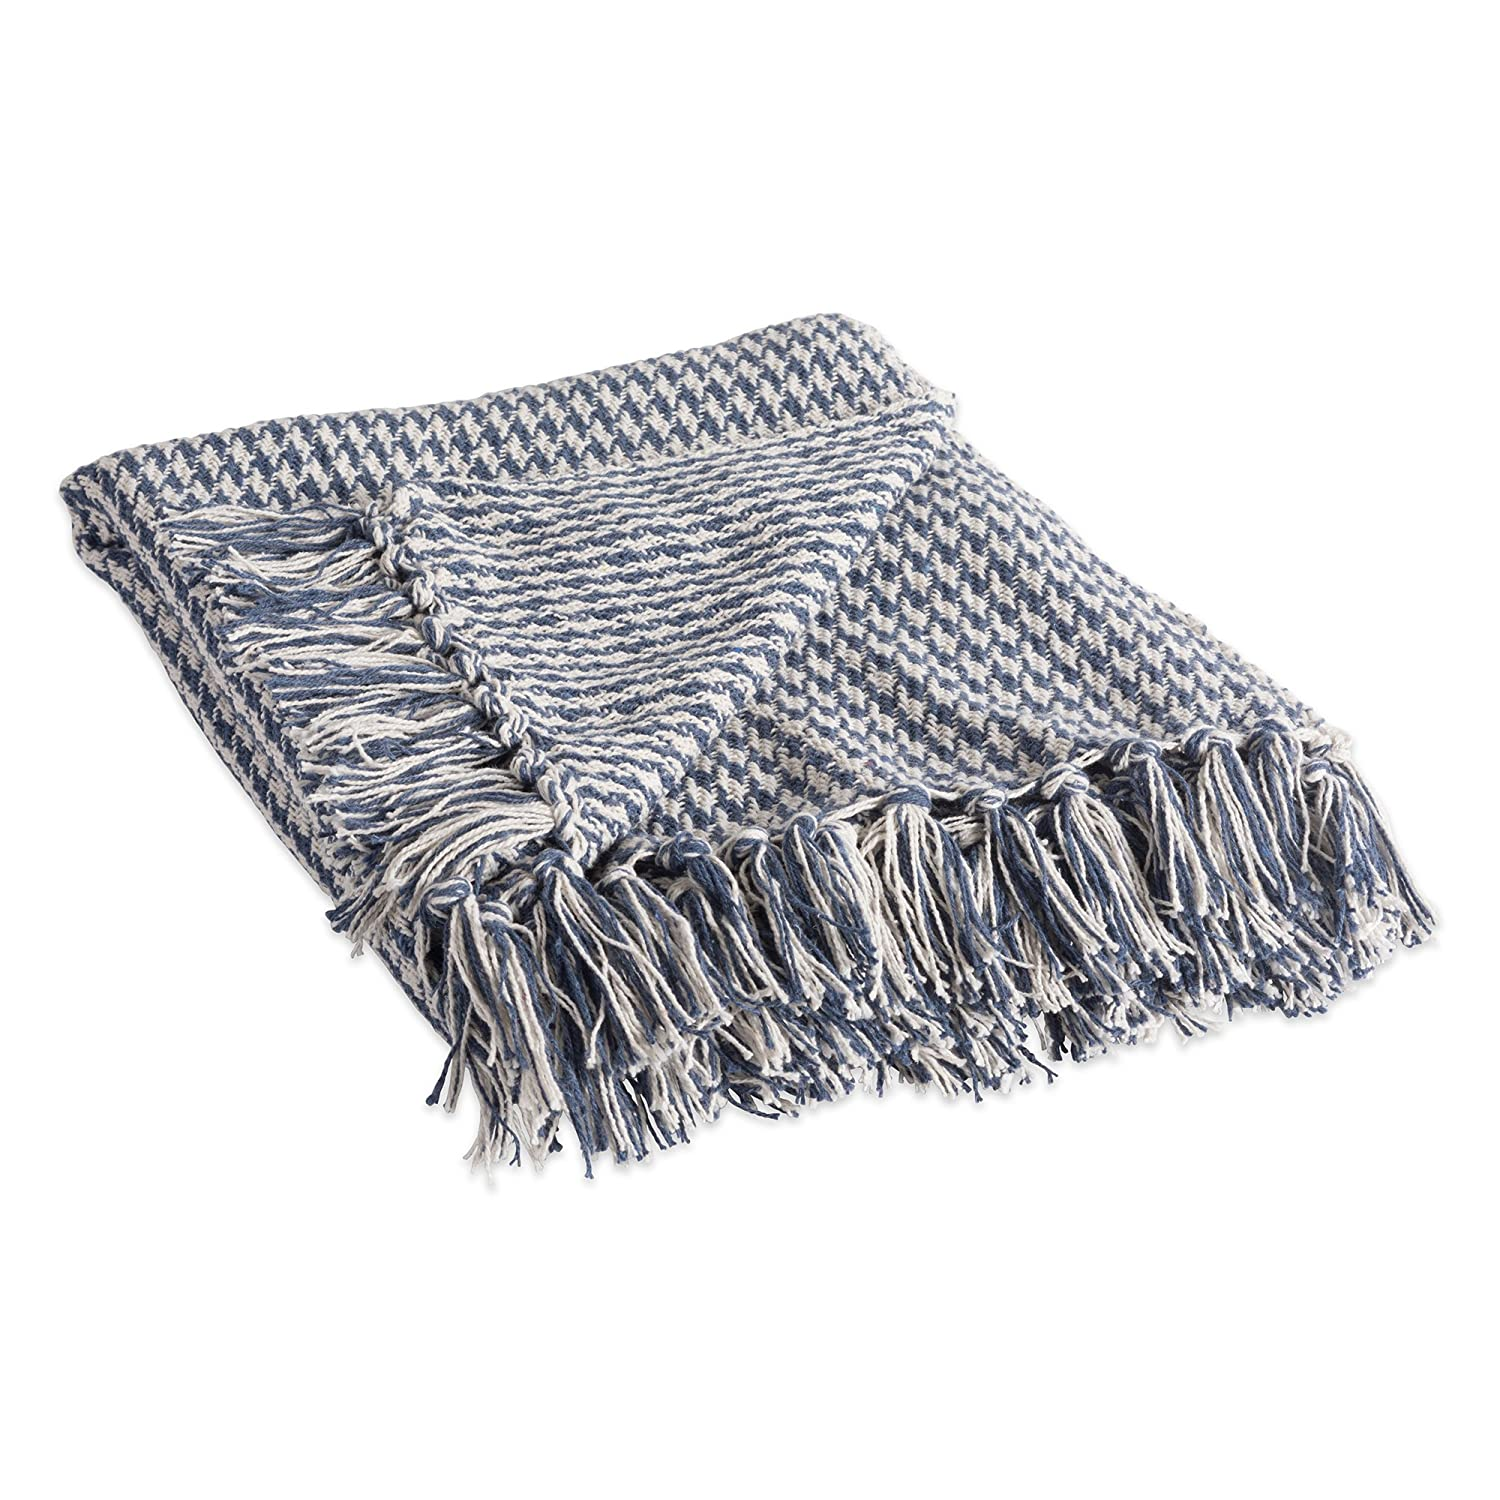 """DII Rustic Farmhouse Cotton Houndstooth Blanket Throw with Fringe For Chair, Couch, Picnic, Camping, Beach, & Everyday Use , 50 x 60"""" - French Blue"""